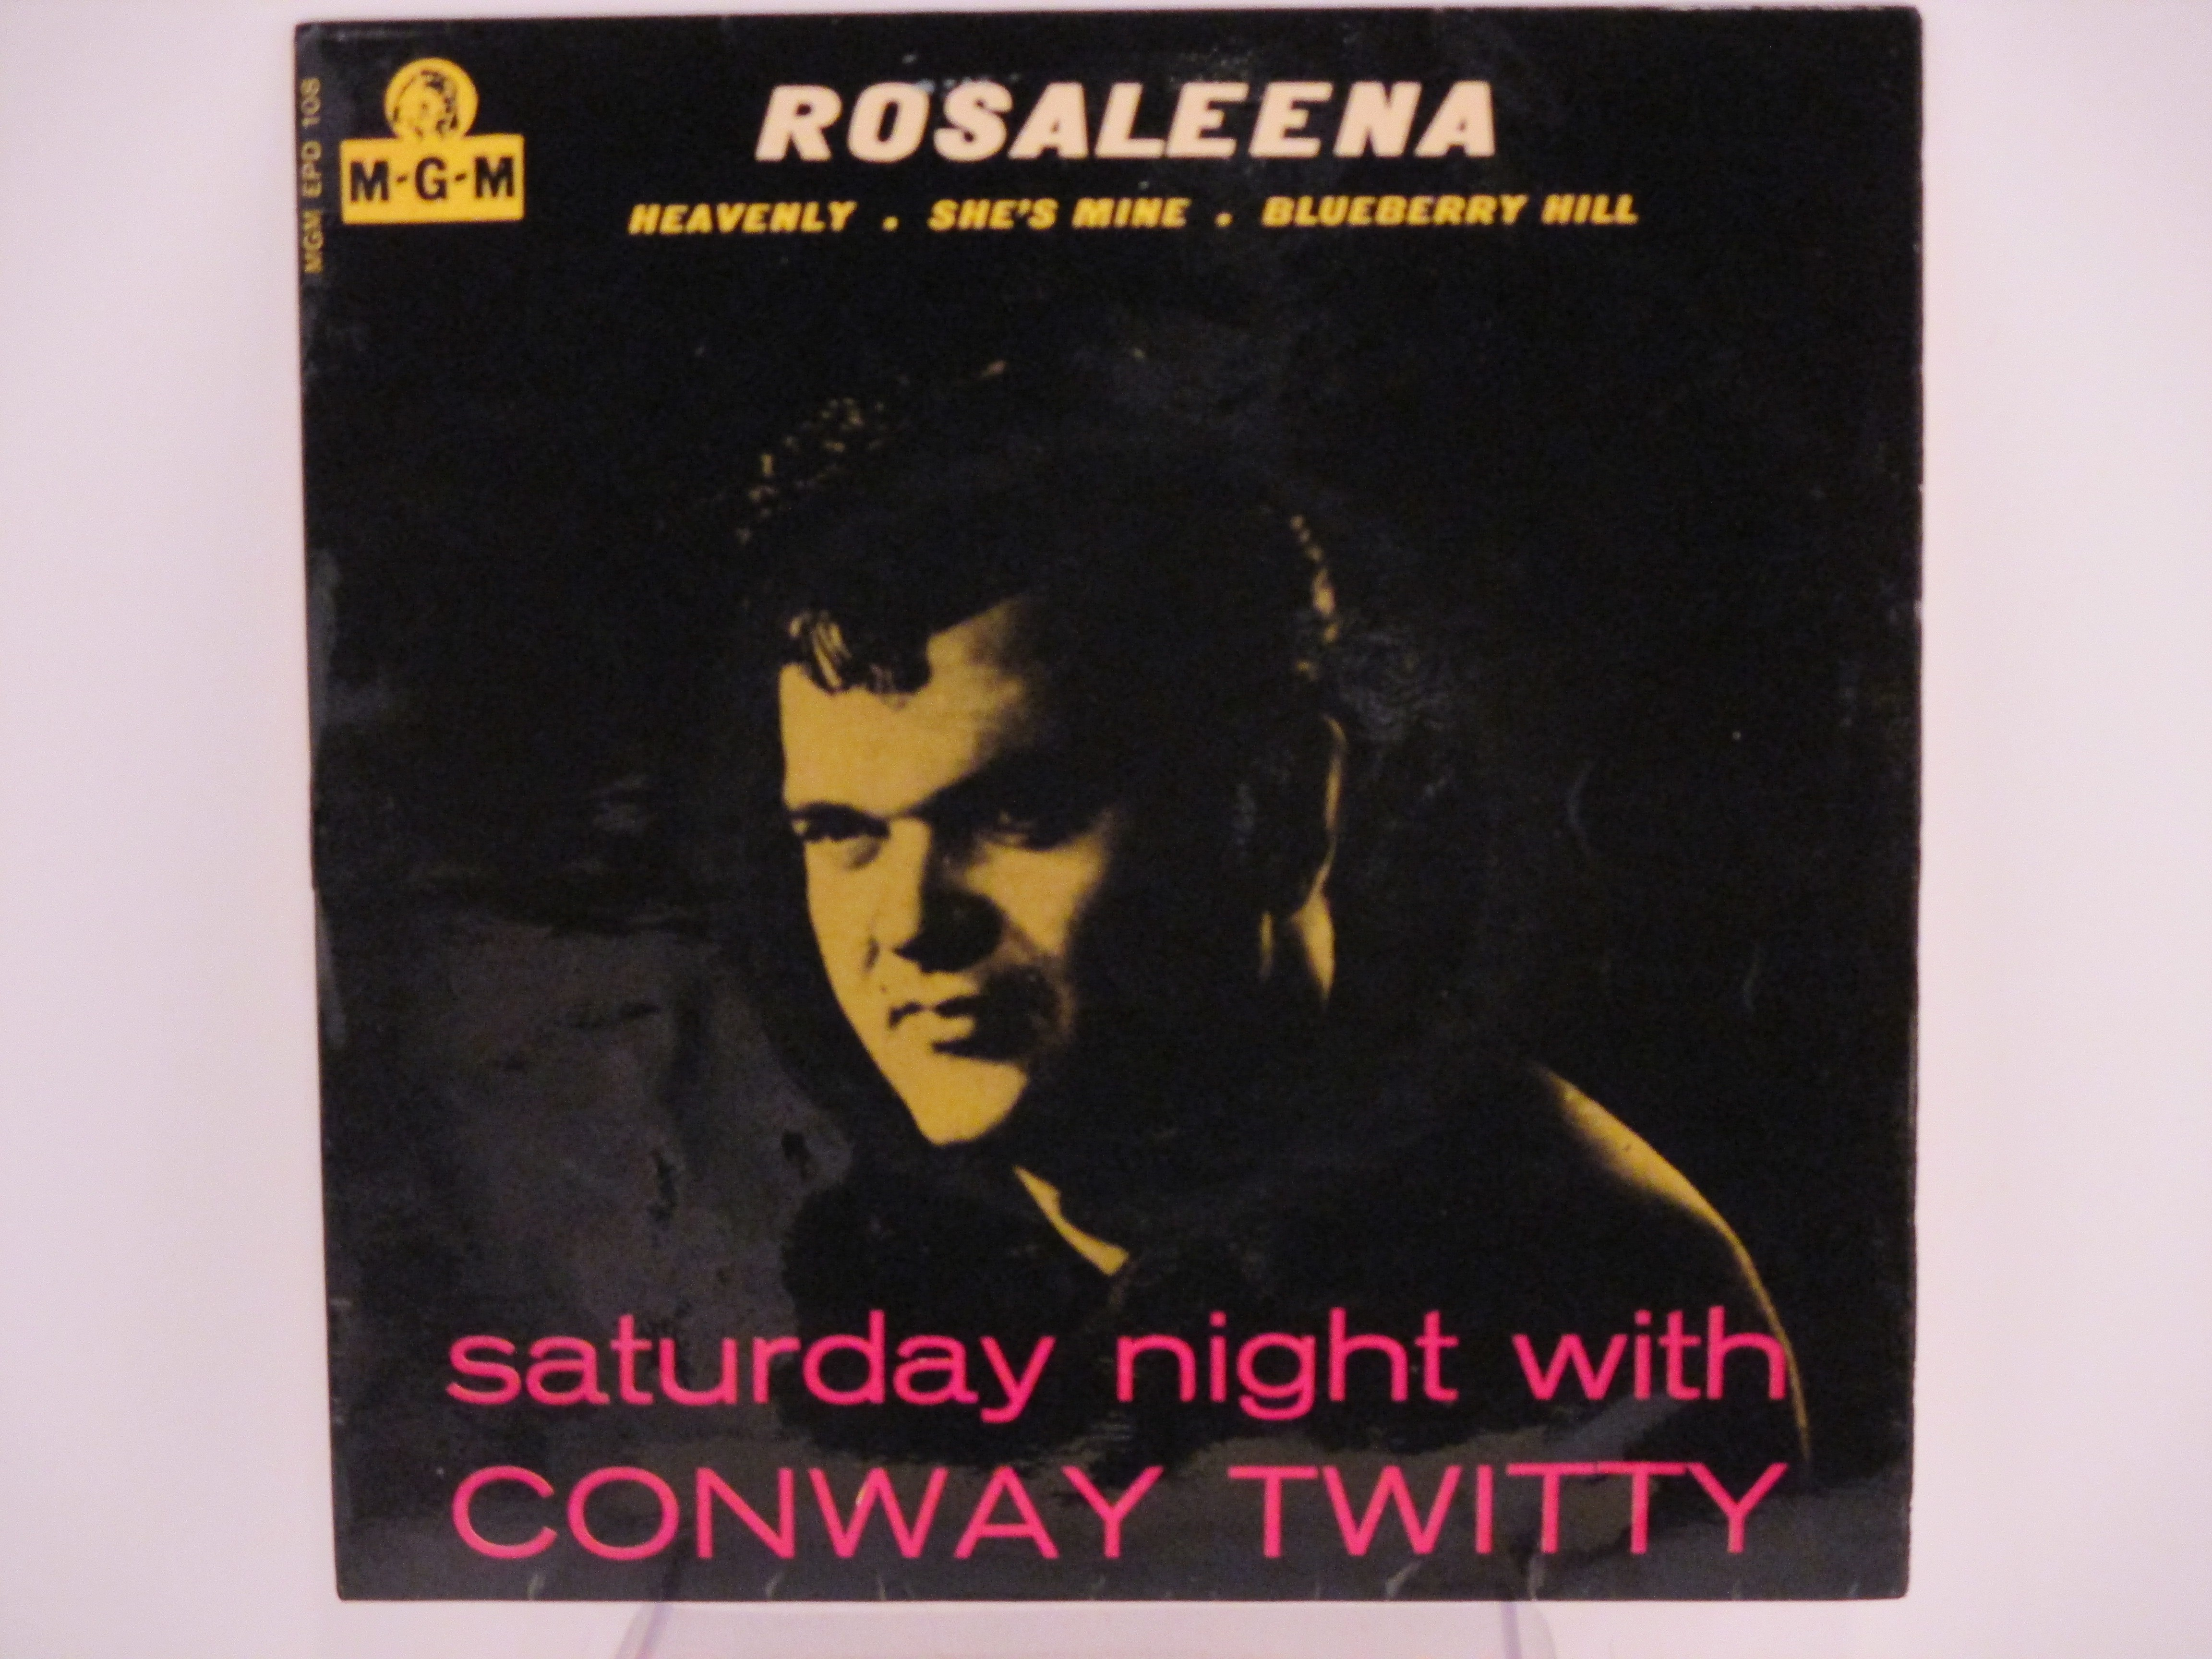 CONWAY TWITTY : Rosaleena / Heavenly / She's mine / Blueberry hill